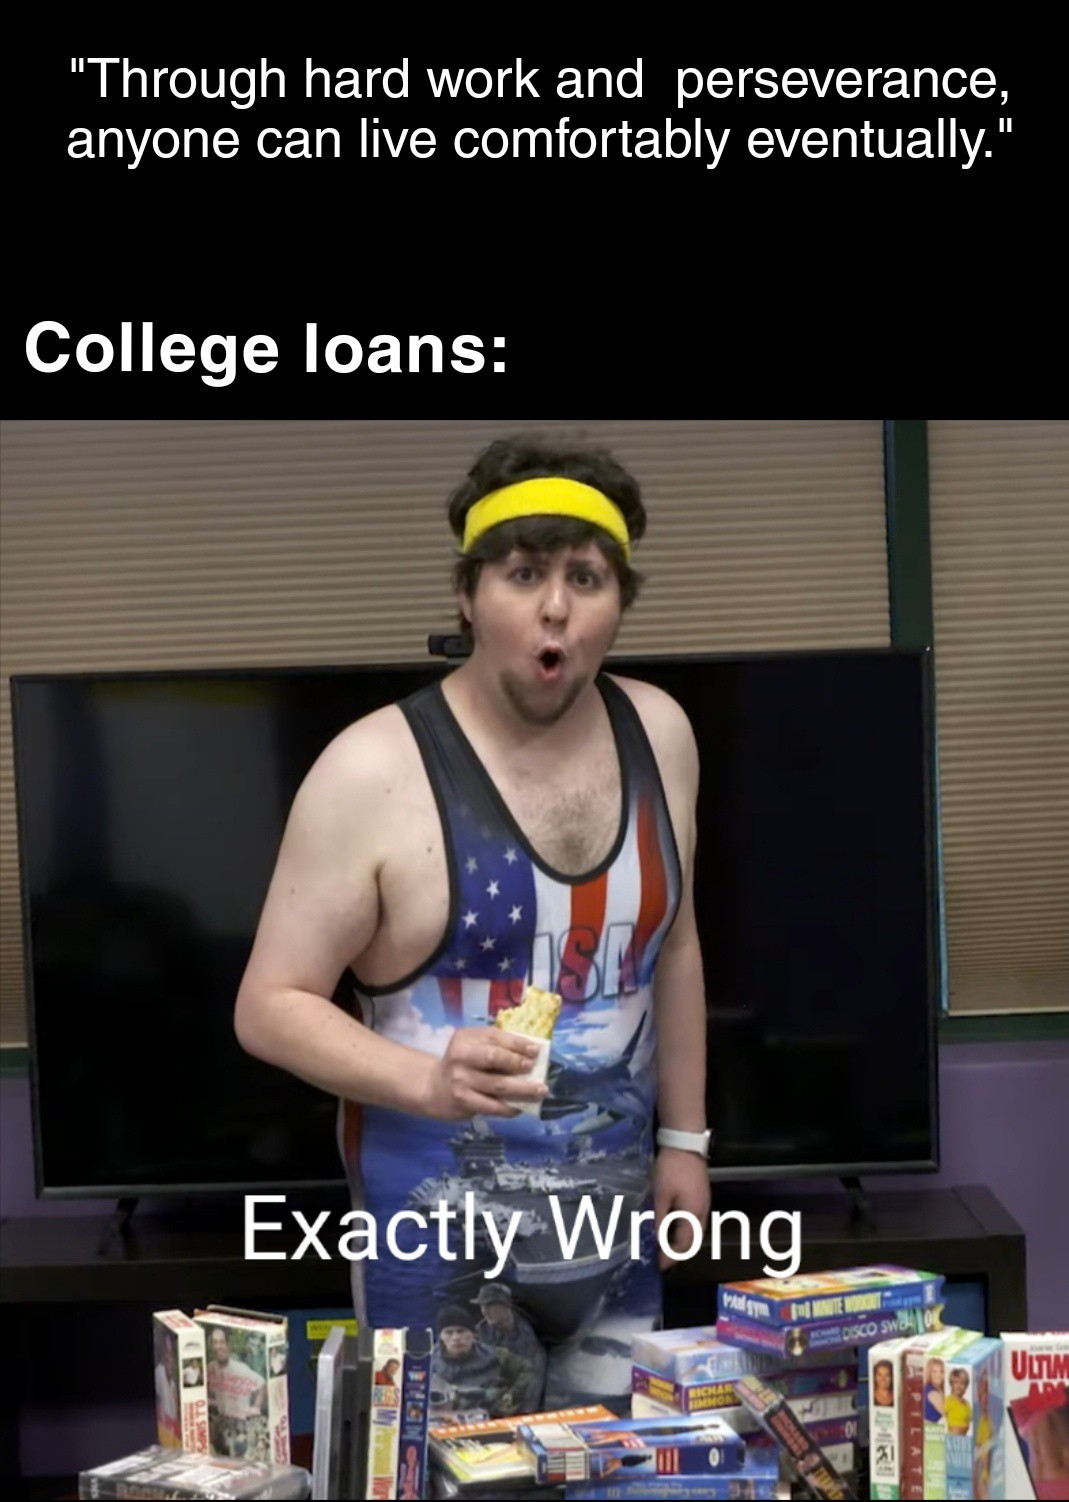 New format from latest jontron? - meme